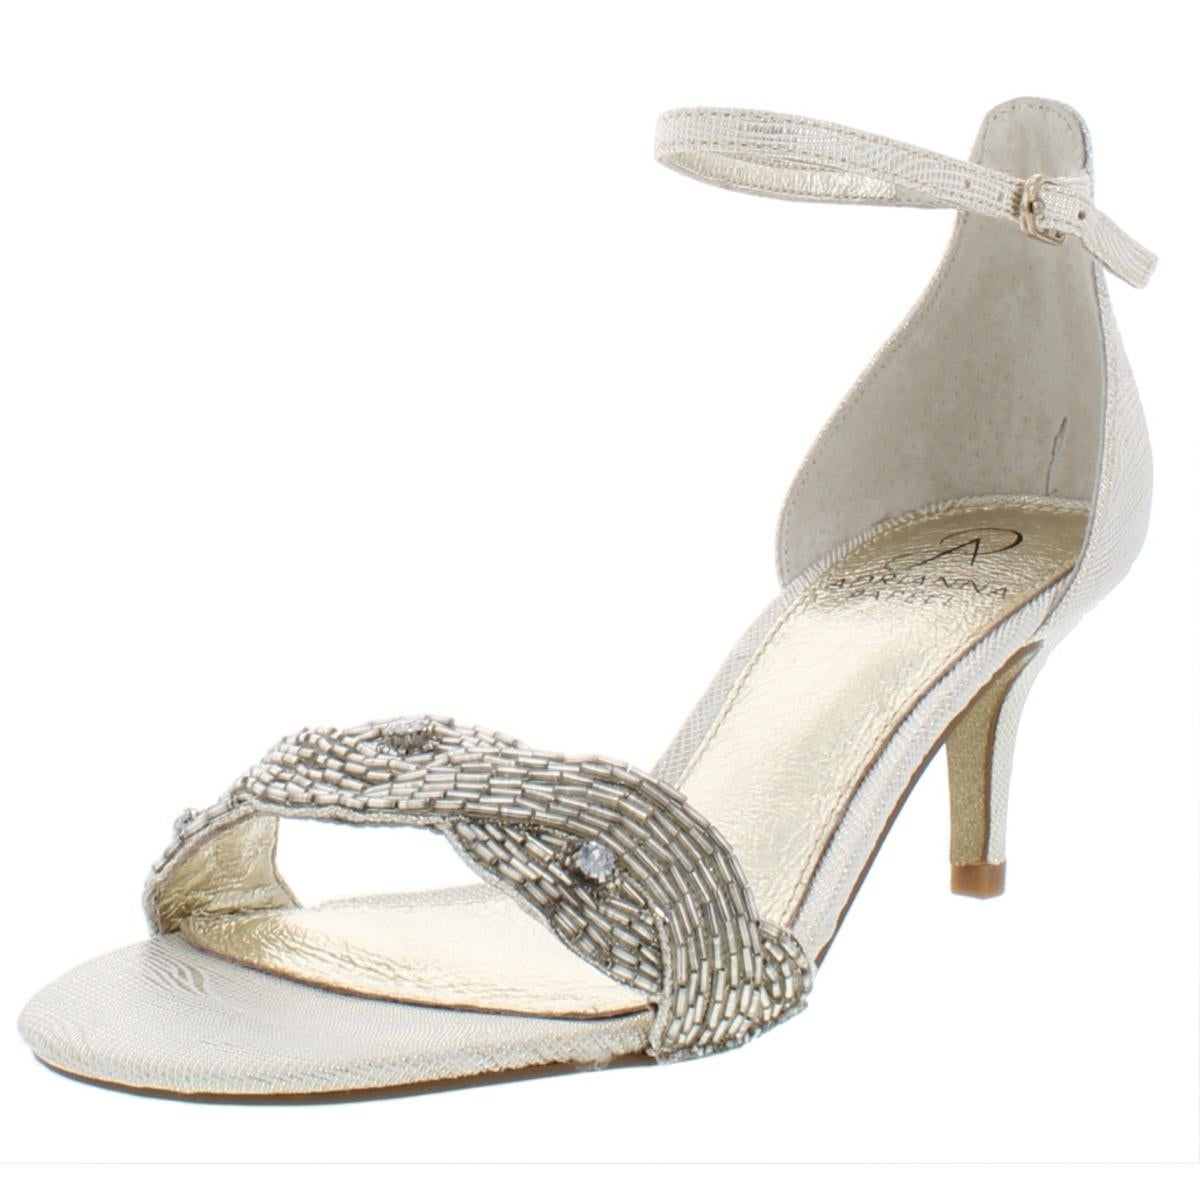 dde10482dc3e Shop Adrianna Papell Womens Aerin Evening Heels Beaded Open Toe - Free  Shipping Today - Overstock - 21162303